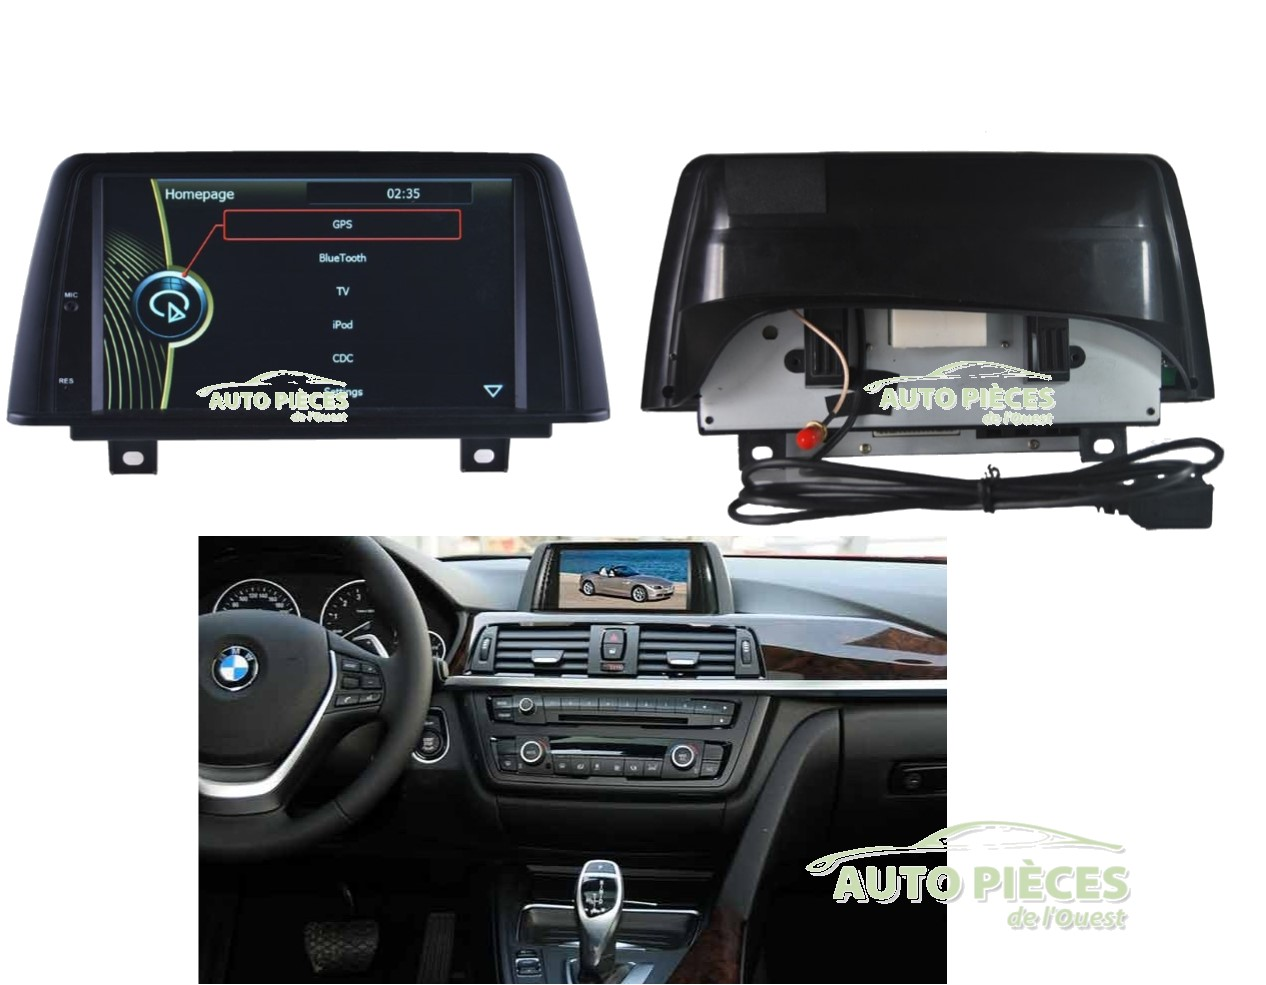 lecteur dvd autoradio bmw 1 serie f20 gps navigation multimedia hl8840gb auto pi ces de l 39 ouest. Black Bedroom Furniture Sets. Home Design Ideas